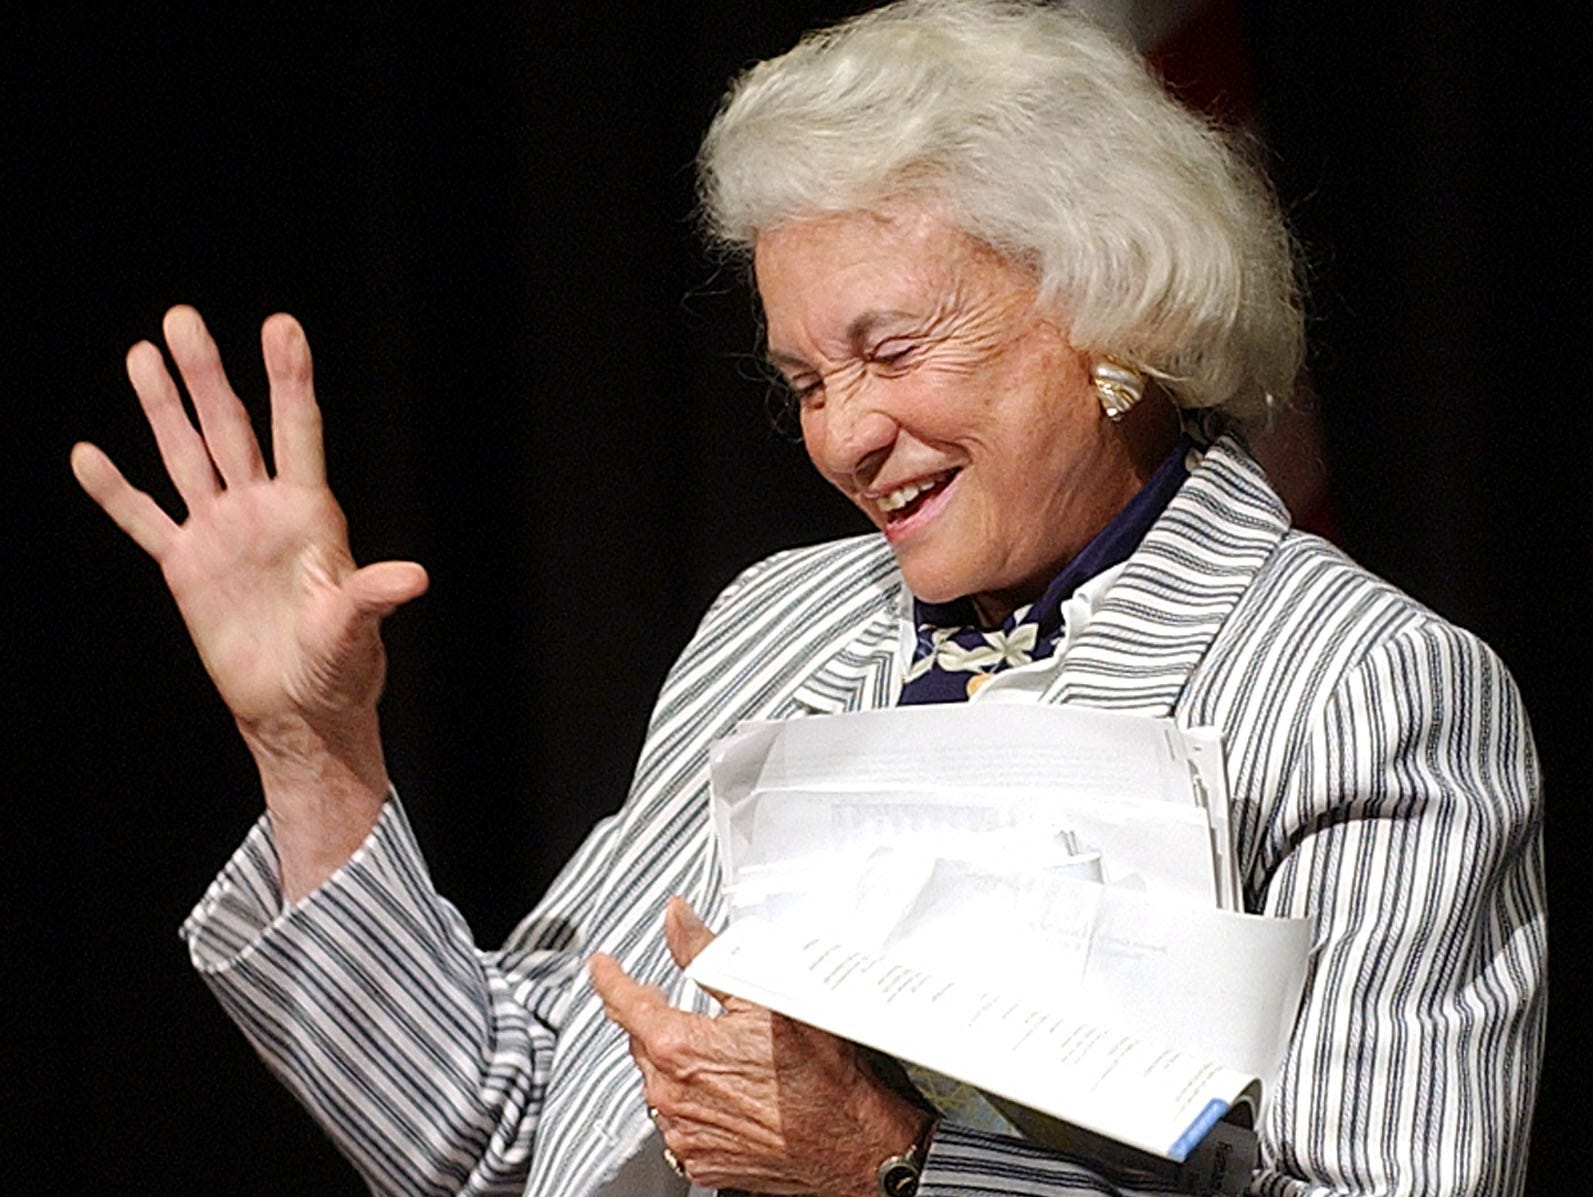 Associate Justice of the U.S. Supreme Court Sandra Day O'Connor waves as she departs the 2004 9th Circuit Judicial Conference Thursday, July 22, 2004, in Monterey, Calif.